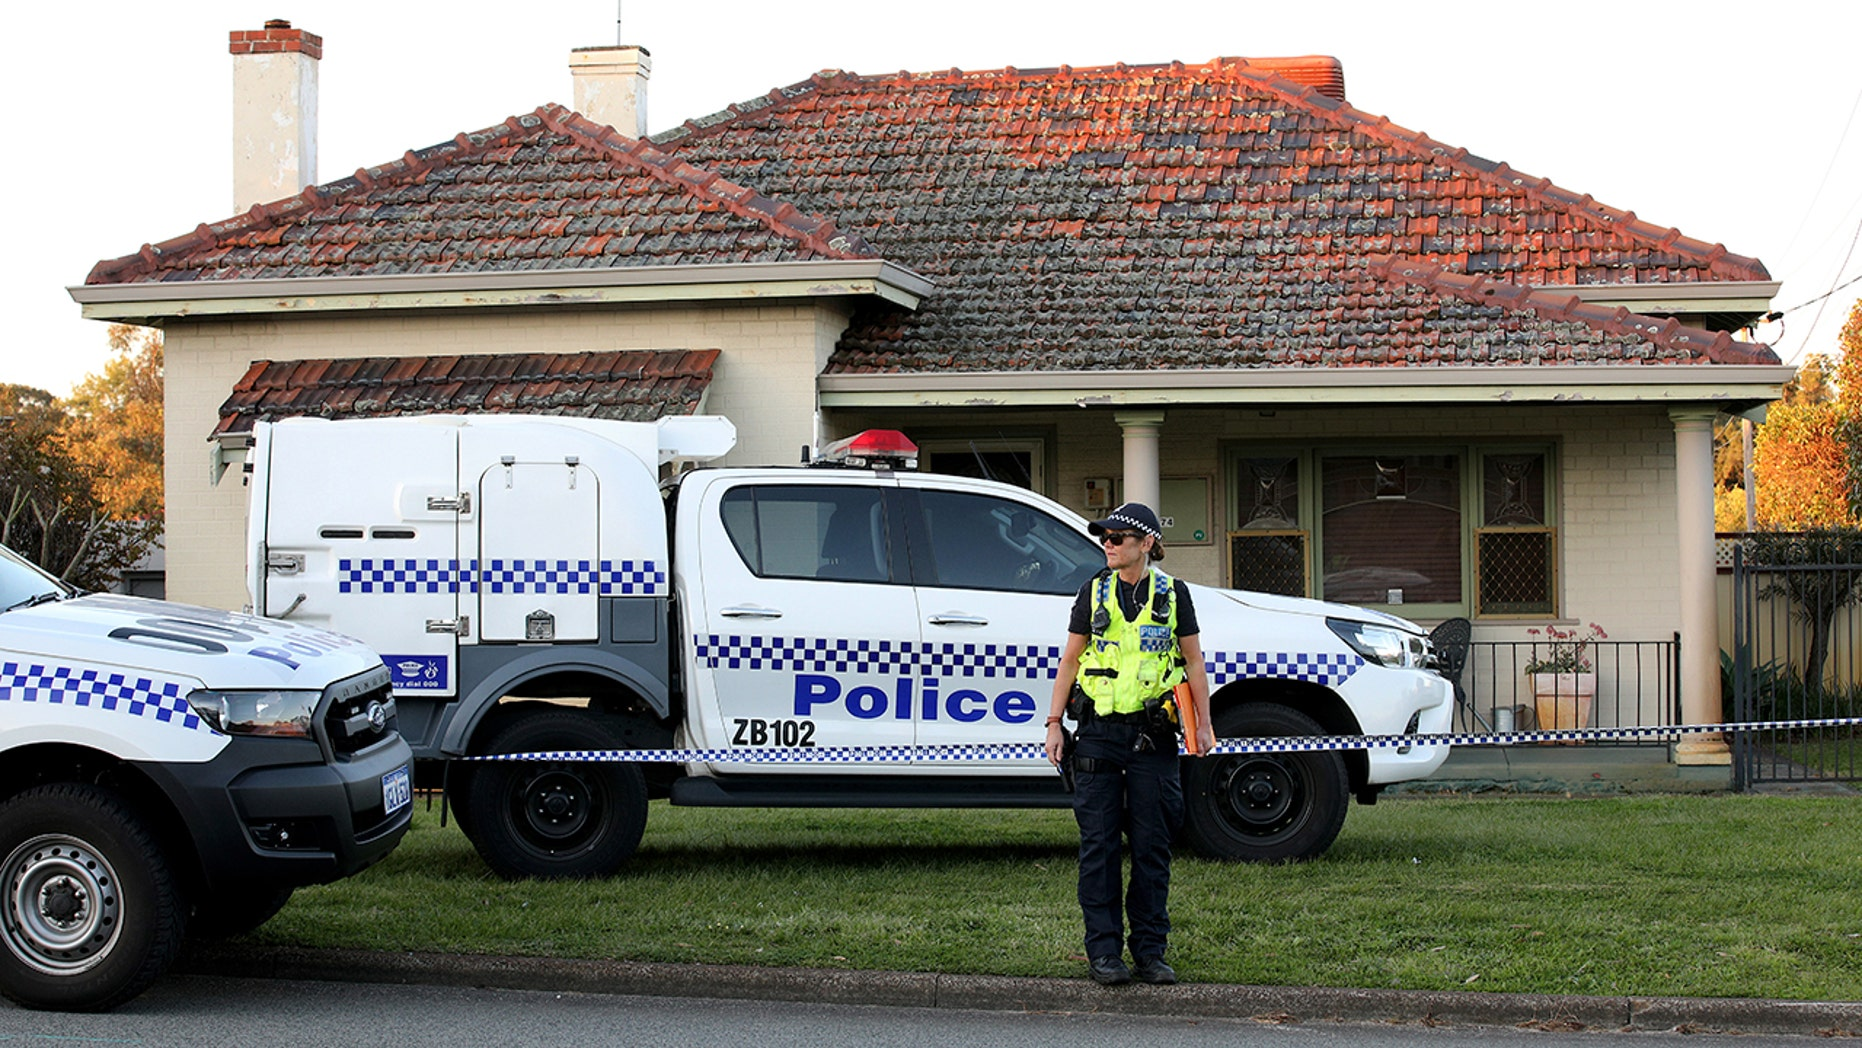 Five people were found dead in a suburb of Perth, Australia, police said.